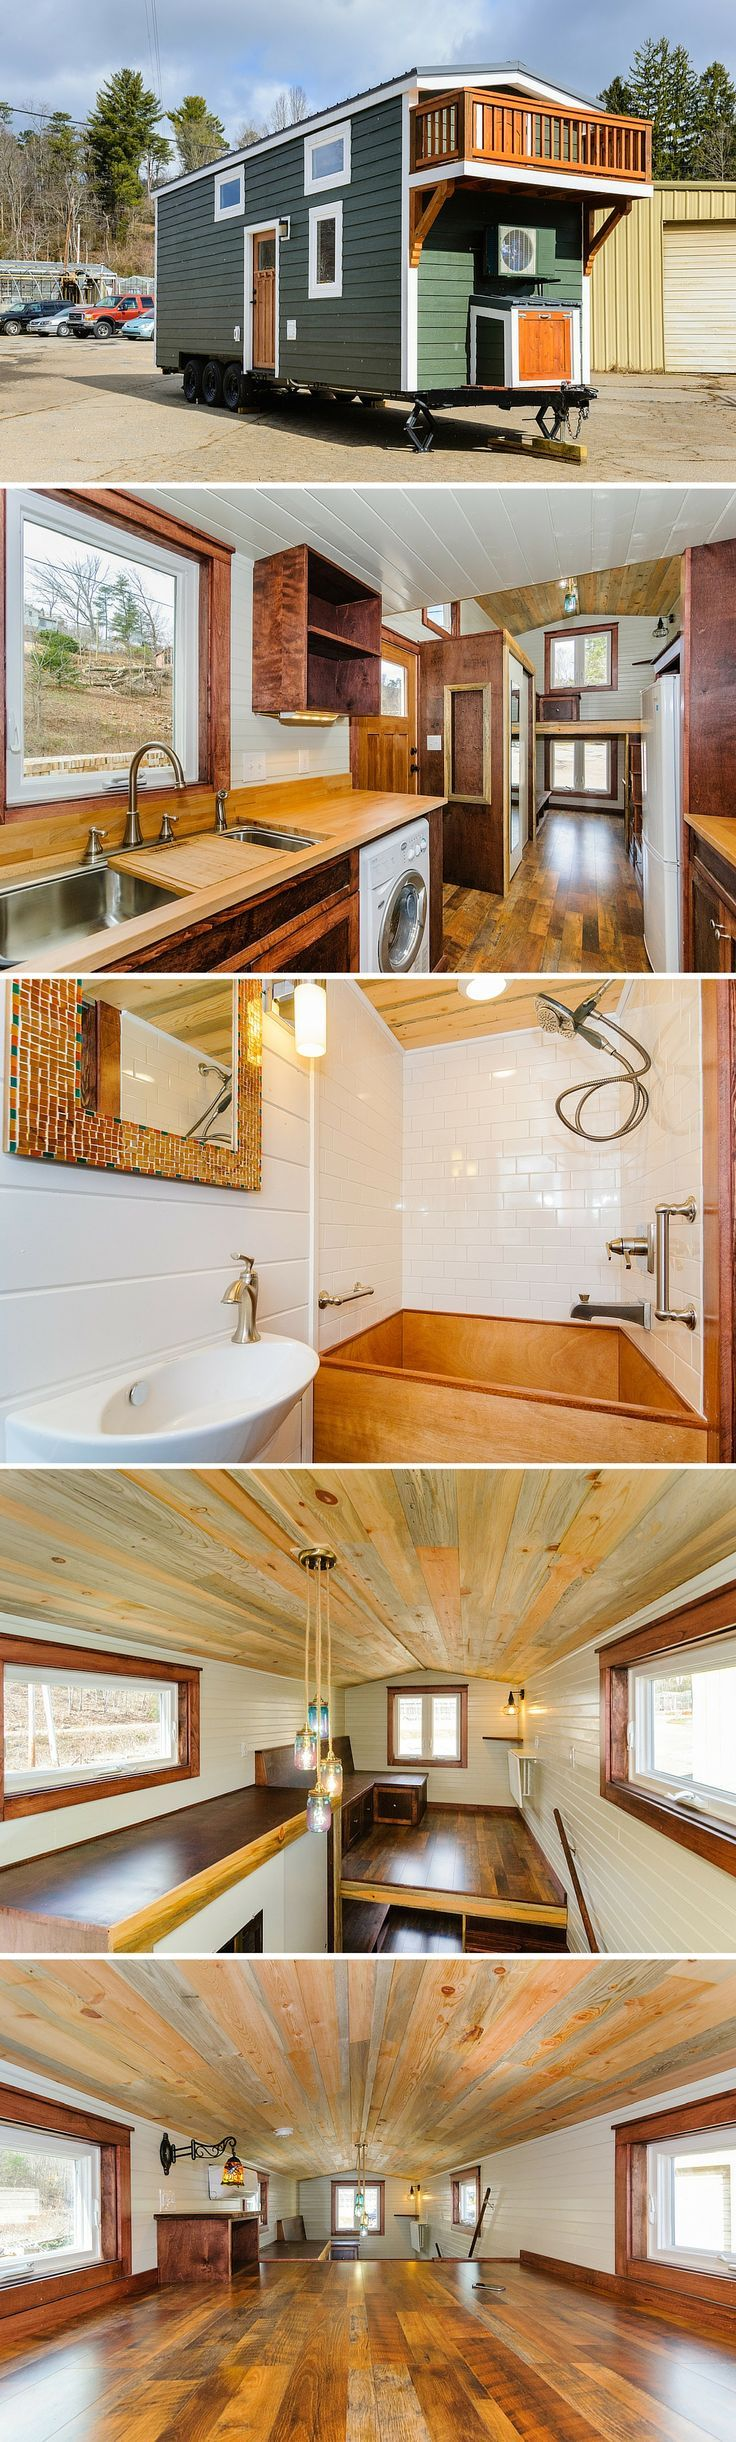 awesome The Sheriff, a 208 sq ft tiny house from Wishbone Tiny Homes... by http://www.danaz-homedecor.xyz/tiny-homes/the-sheriff-a-208-sq-ft-tiny-house-from-wishbone-tiny-homes/